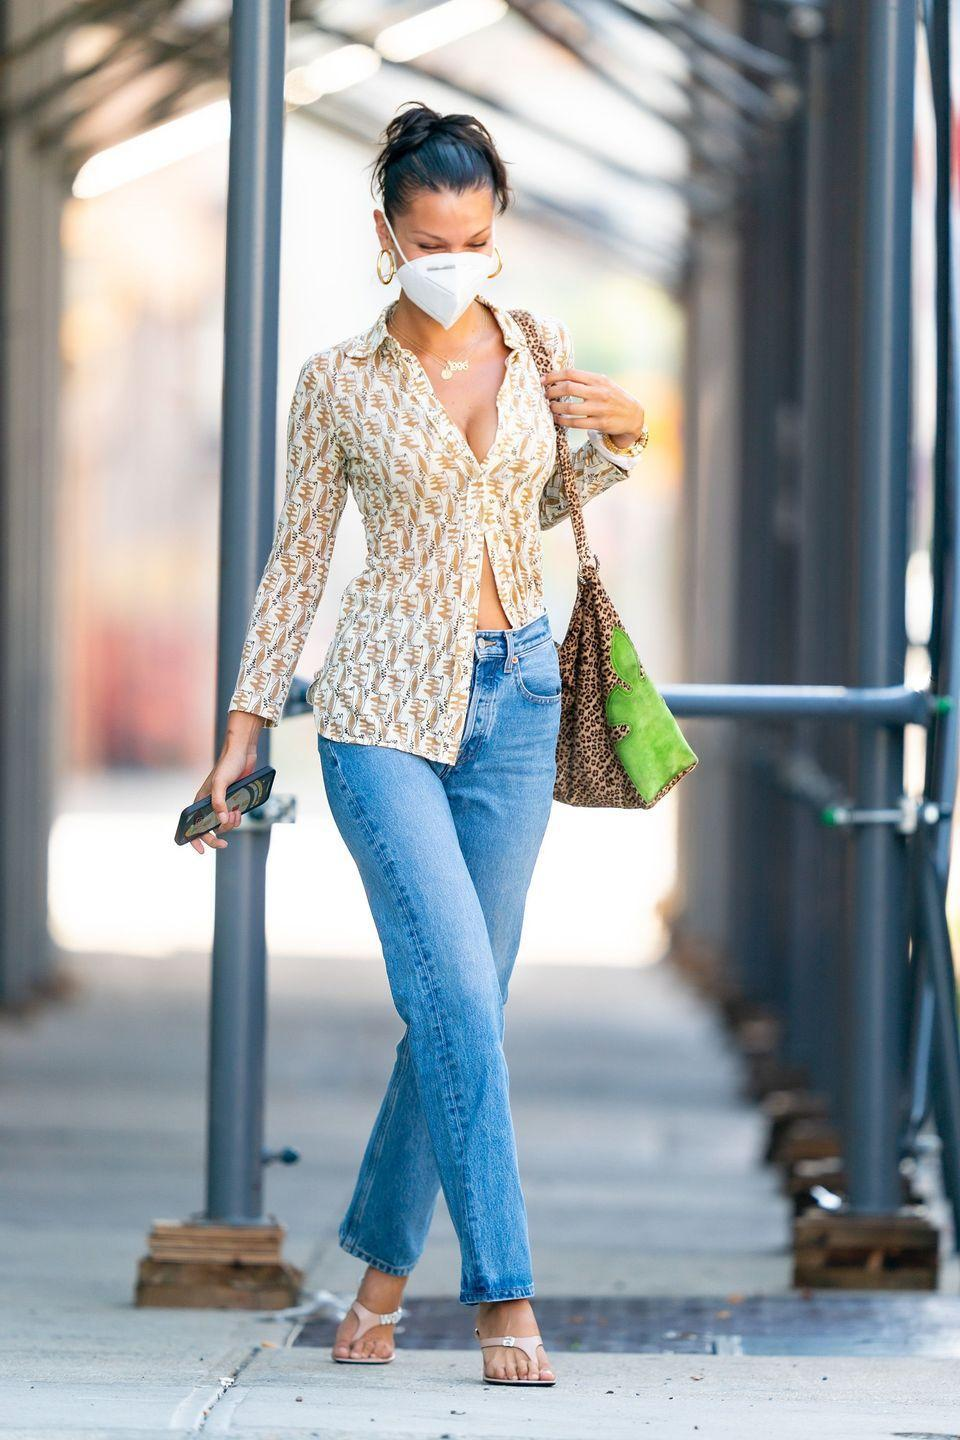 """<p>Hadid walks the streets of New York in a blue jeans, a printed button-down, gold hoops earrings, heeled sandals by <a href=""""https://www.fwrd.com/product-alexander-wang-ivy-85-logo-thong-sandal-in-sandstone/AWAN-WZ303/"""" rel=""""nofollow noopener"""" target=""""_blank"""" data-ylk=""""slk:Alexander Wang"""" class=""""link rapid-noclick-resp"""">Alexander Wang</a>, a leopard-print bag by Chrome Hearts, and, of course, a face mask. </p>"""